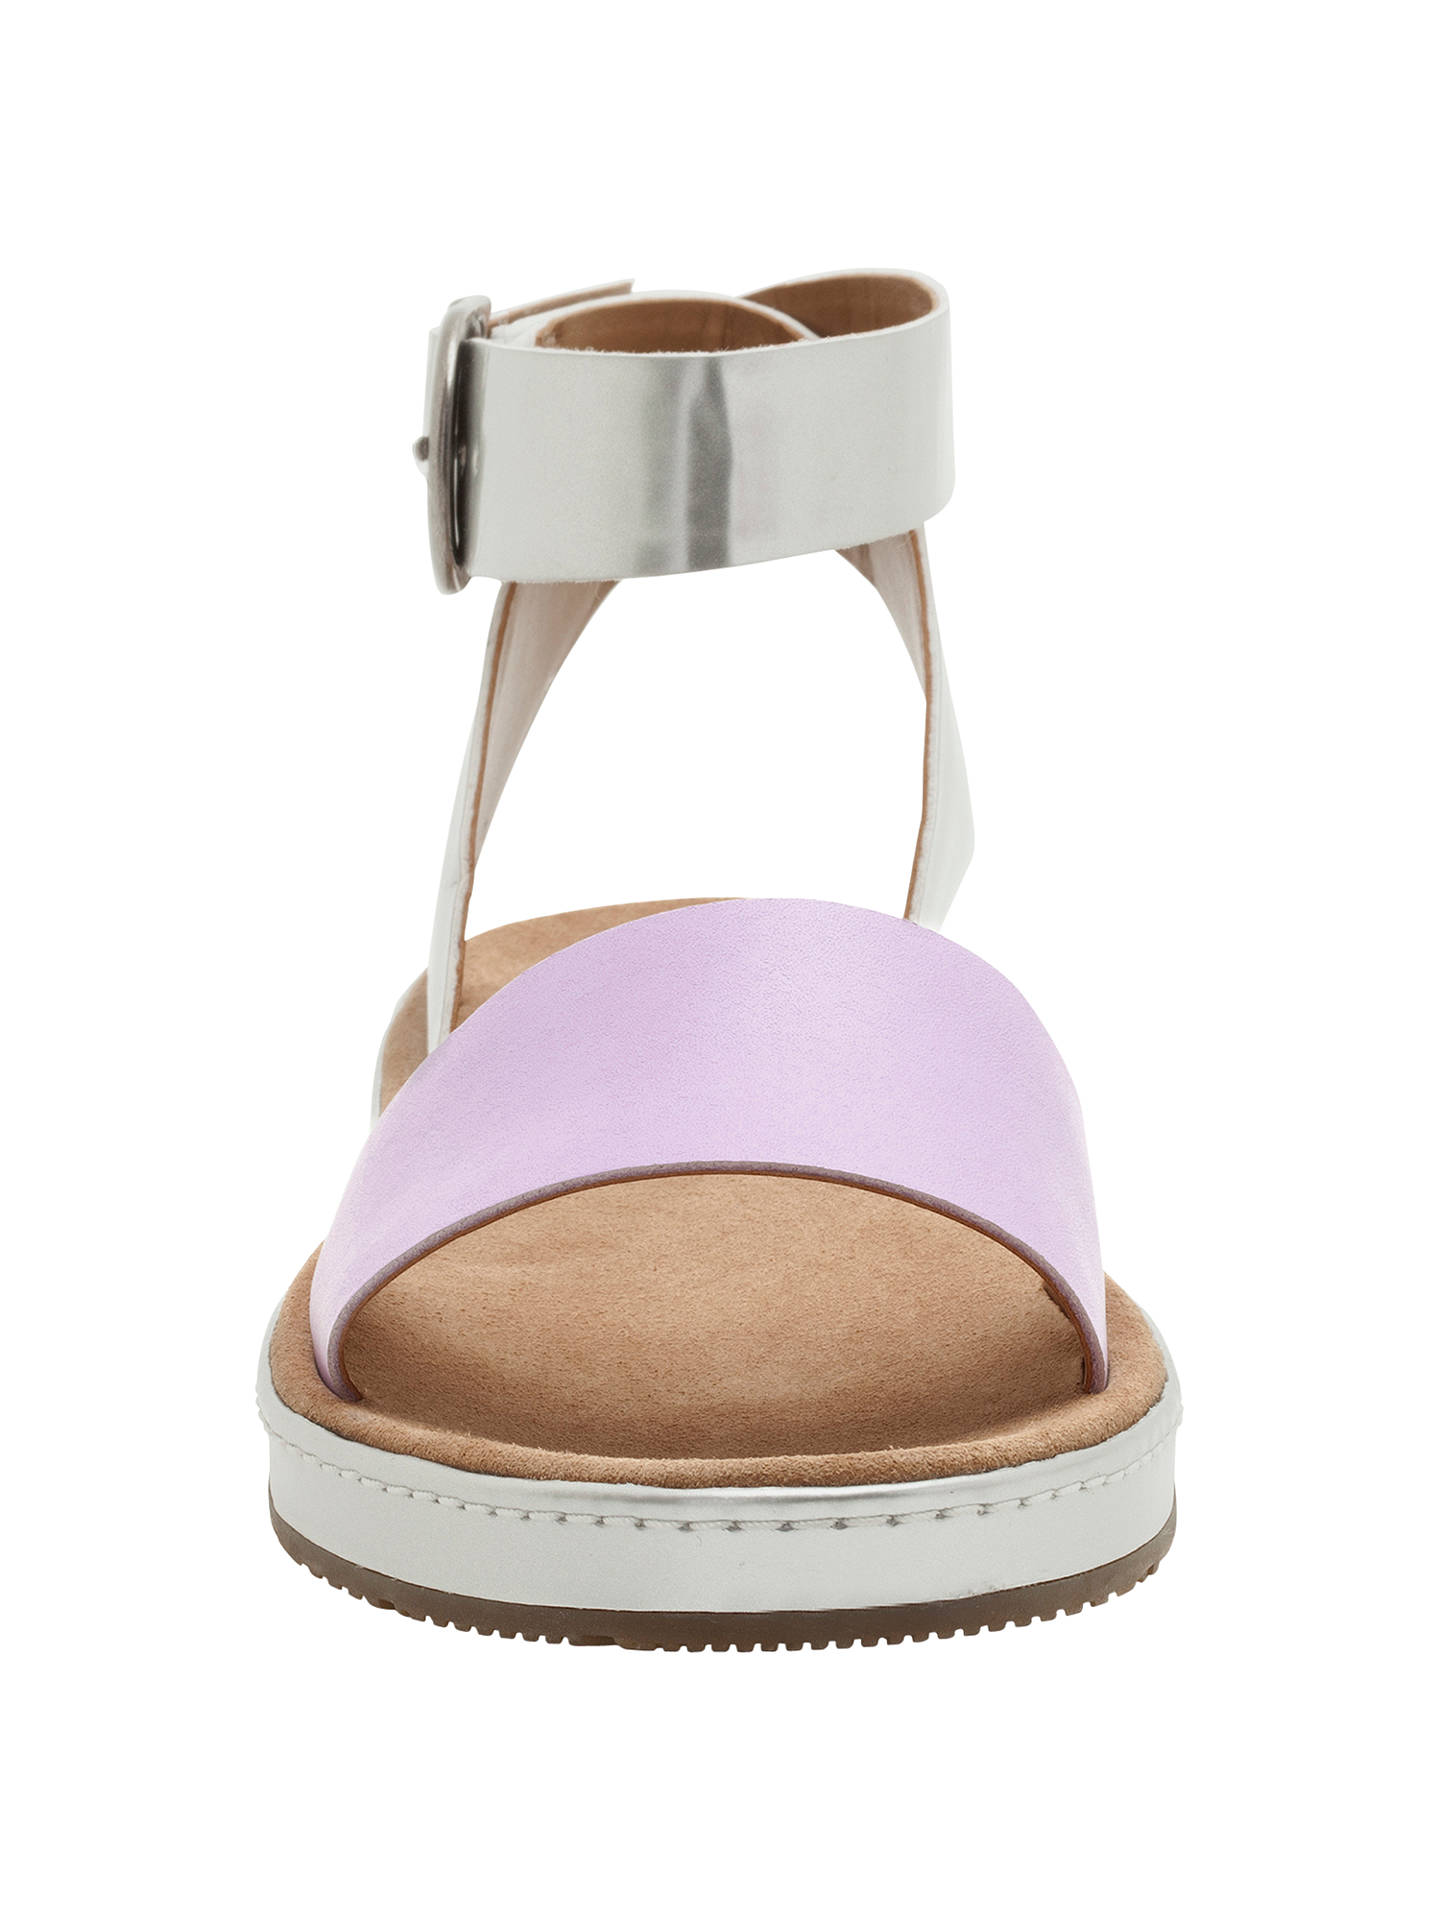 0aa769ff991 Clarks Romantic Moon Leather Flat Sandals at John Lewis   Partners